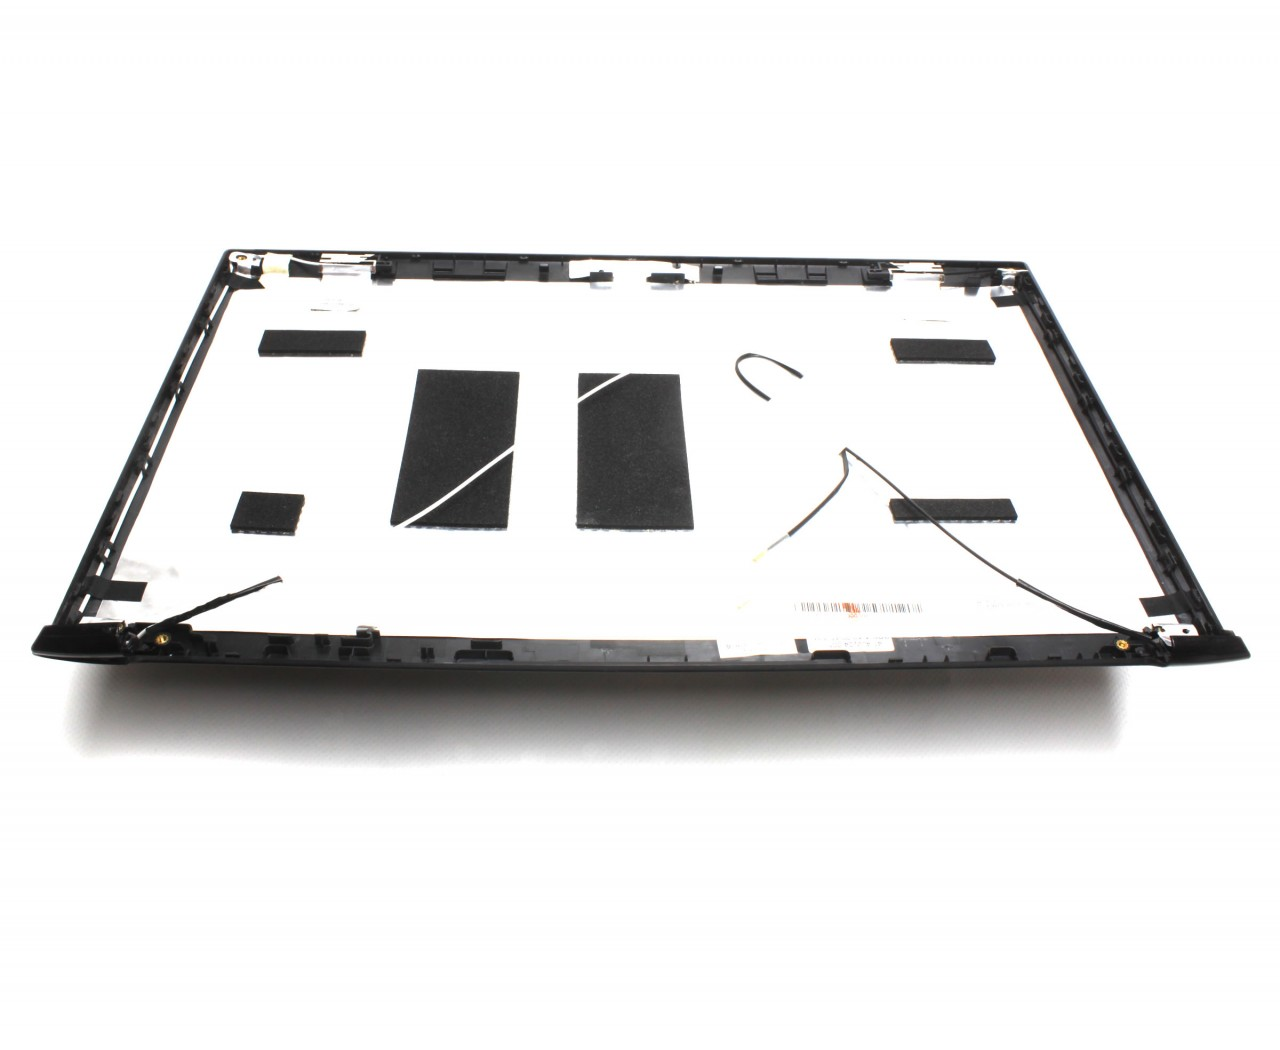 Capac Display BackCover IBM Lenovo 11S604JW19011300A9K17R Carcasa Display imagine powerlaptop.ro 2021